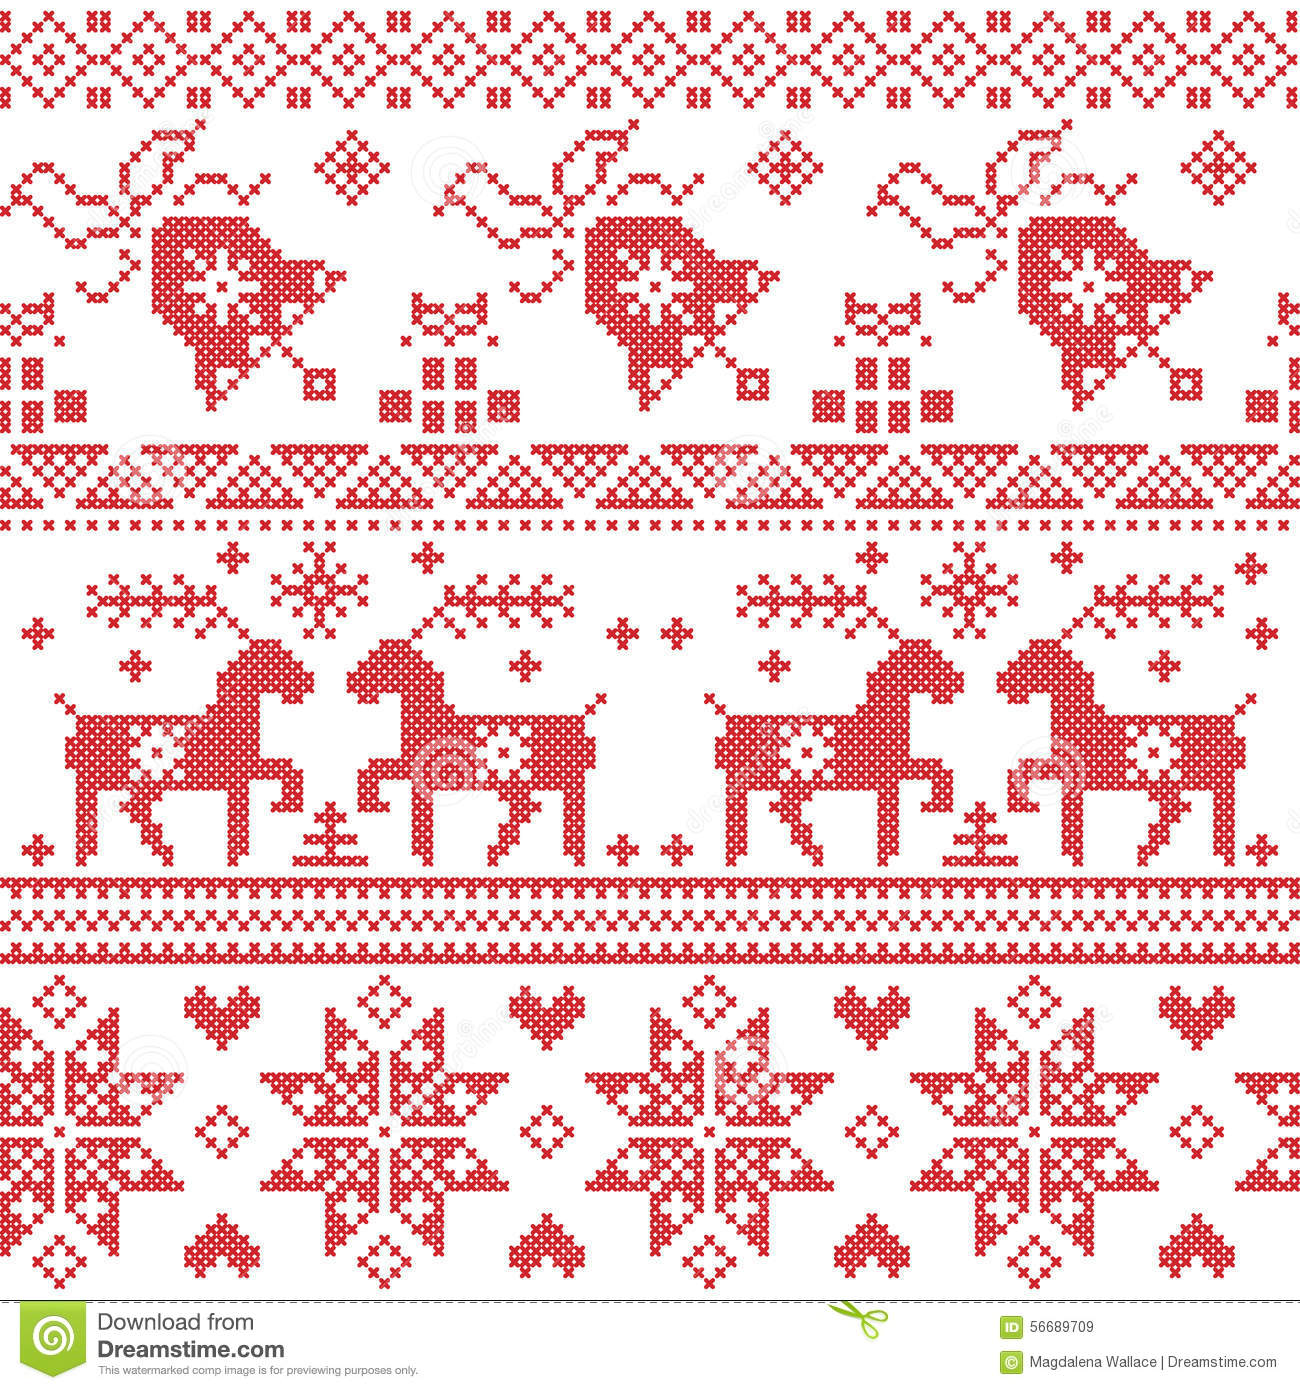 Free Christmas Cross Stitch Patterns To Print Cool Design Ideas